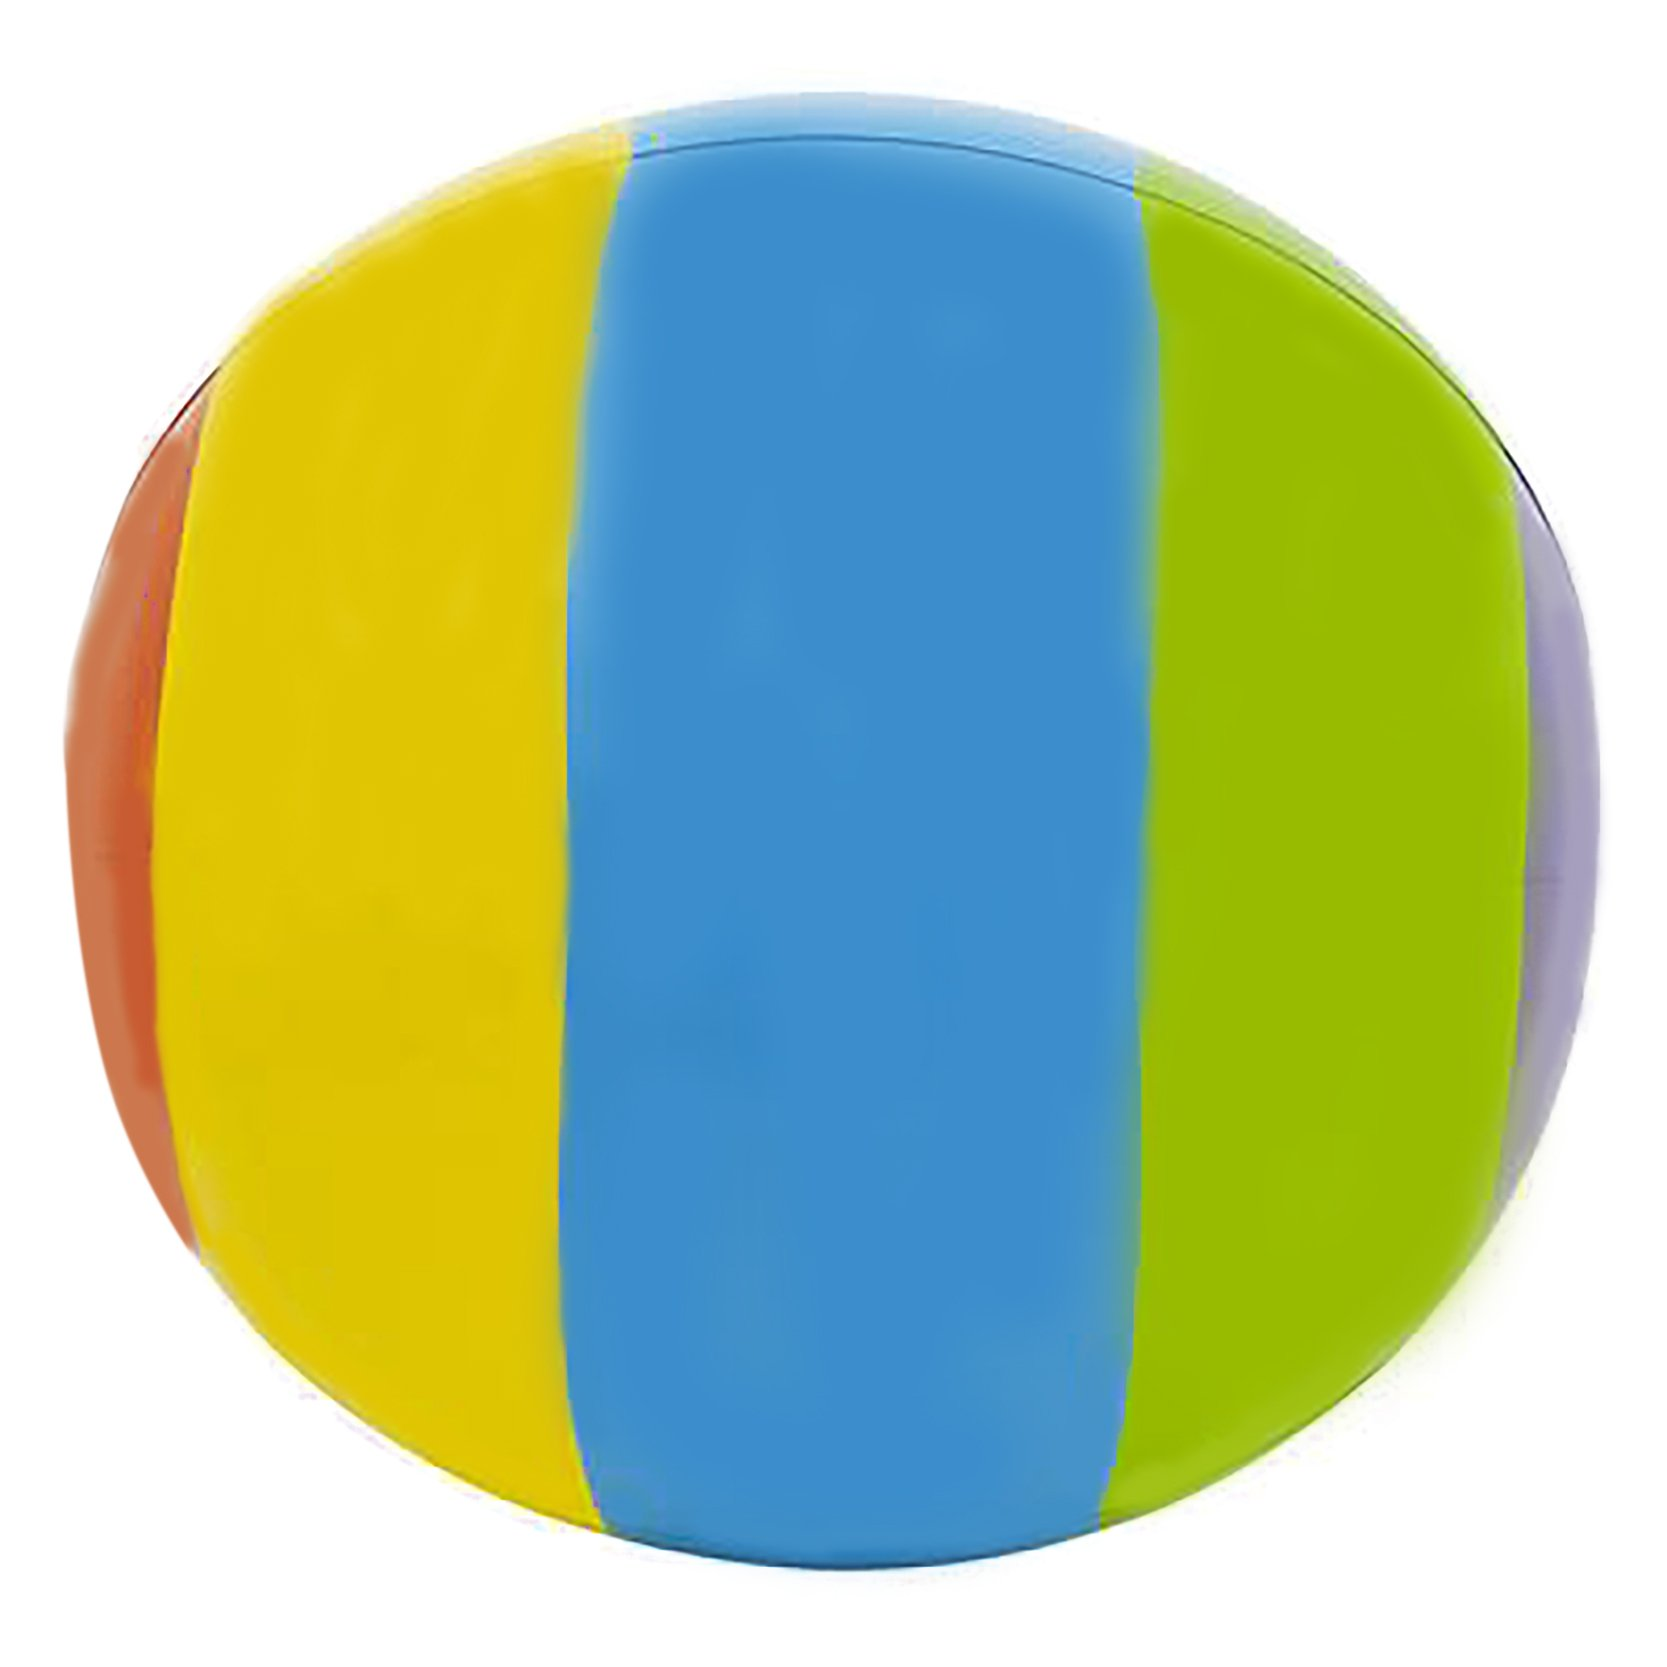 "SNInc. Giant Beach Ball - Fun Sized 48"" Inflatable Beach Ball Pool Toy"